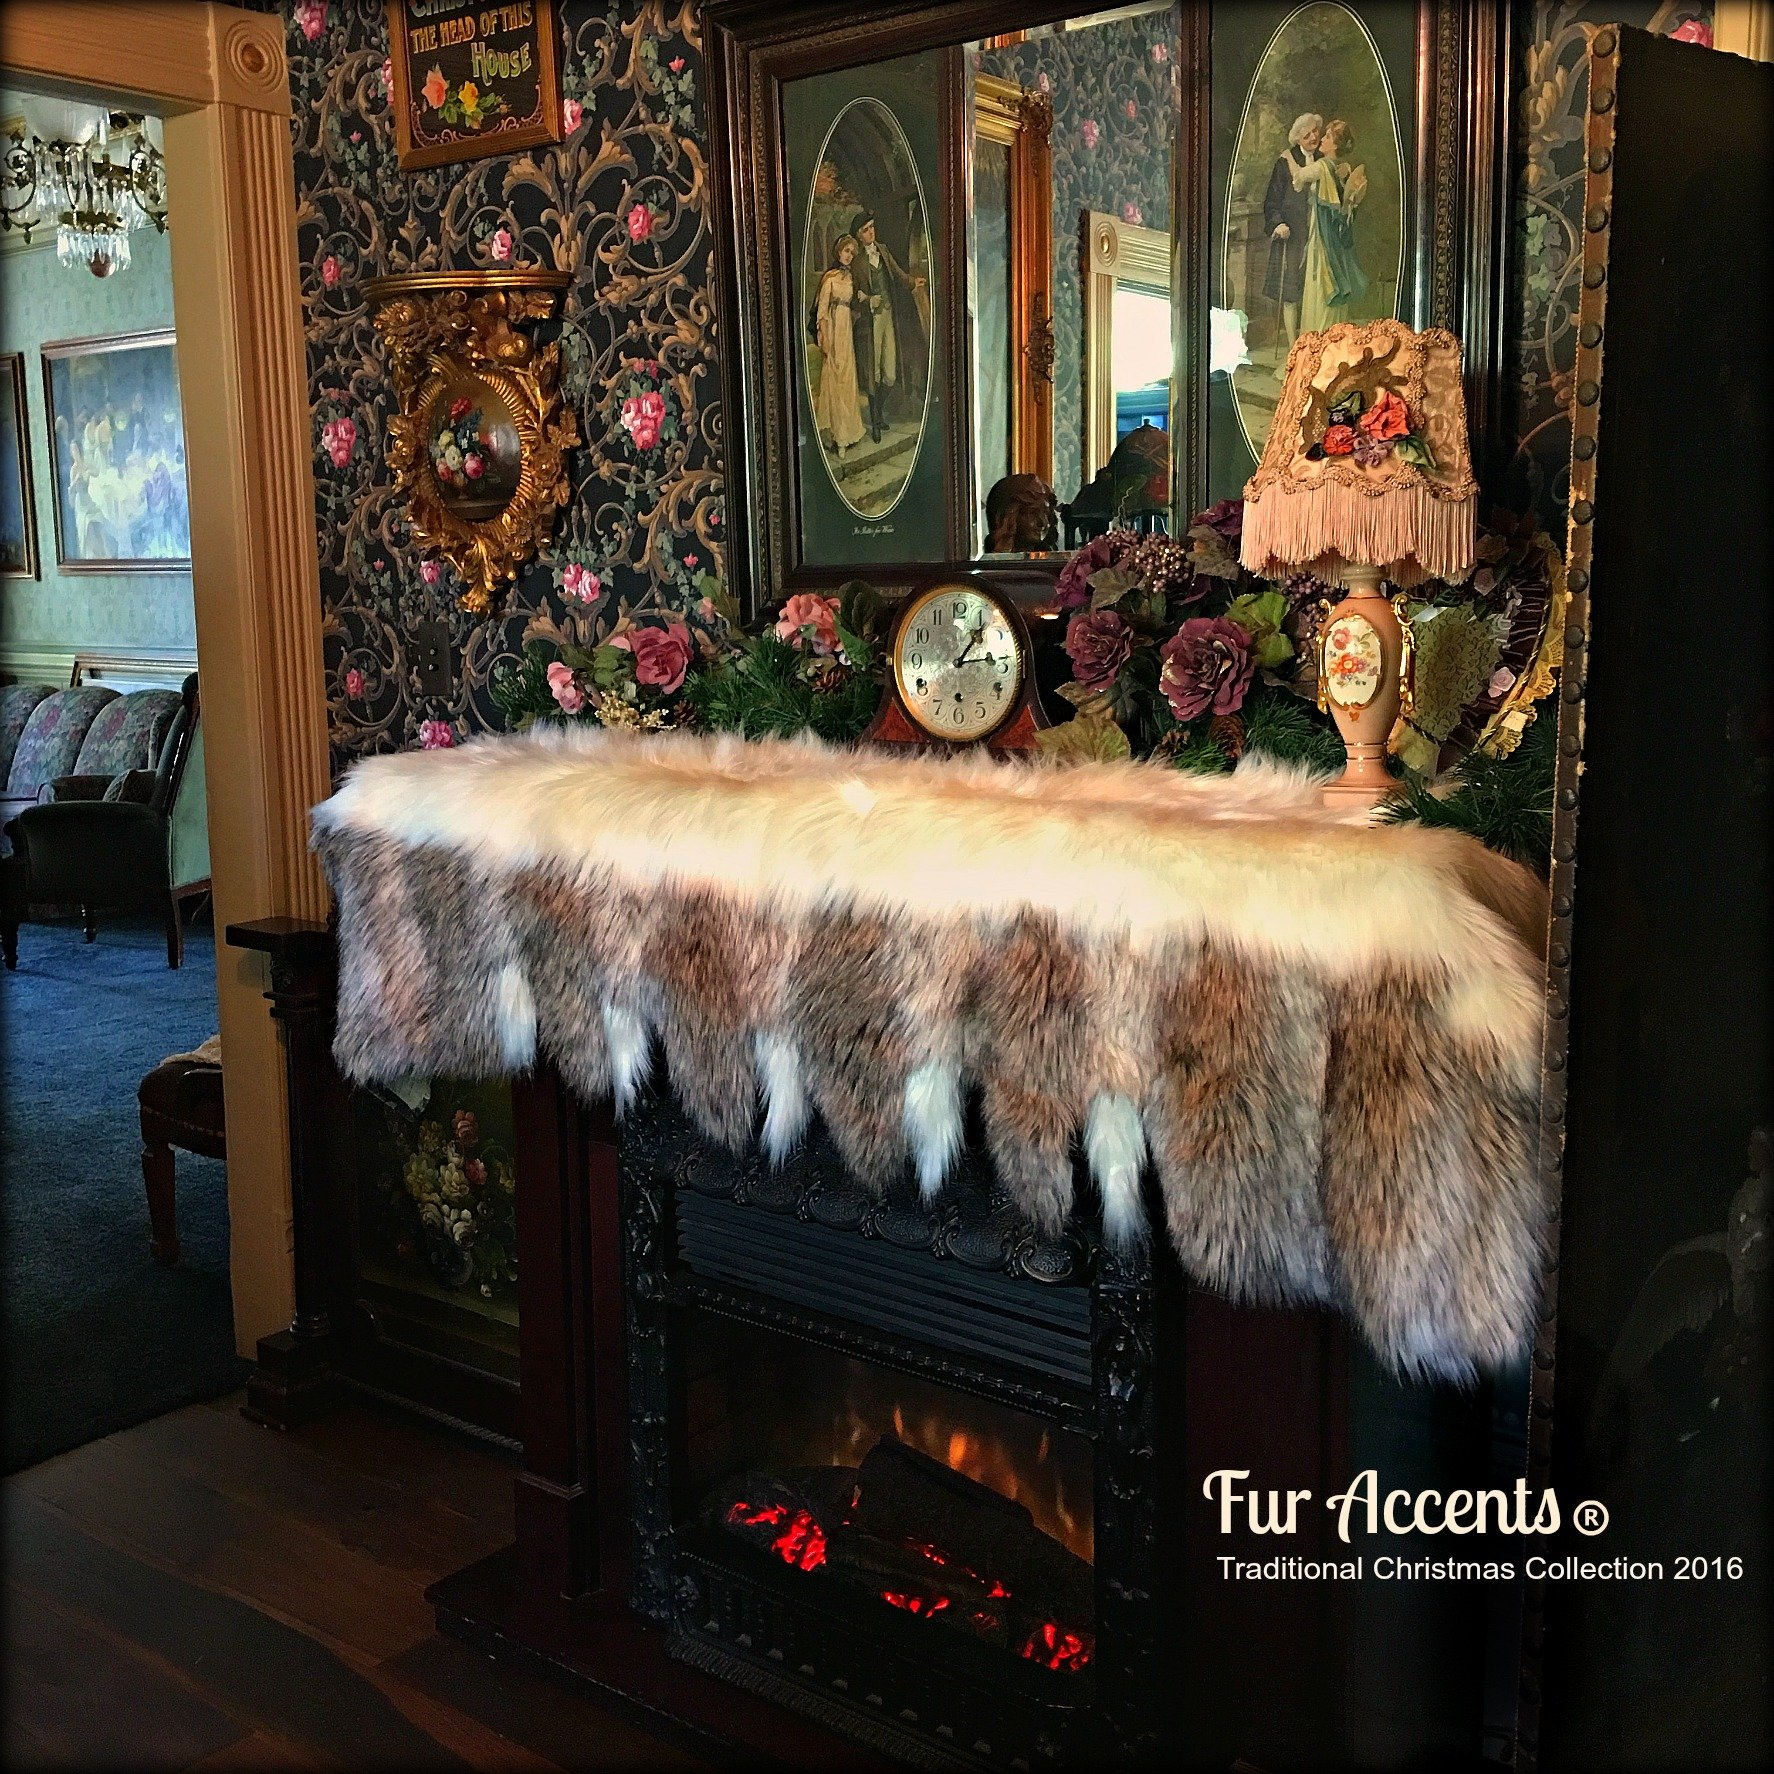 Fireplace Mantle Valance - Garland - Scarf - Christmas Decoration - White Faux Fur with Gray Wolf and Fox Tail Trim - Wonderland Creations by Fur Accents (6'x2')